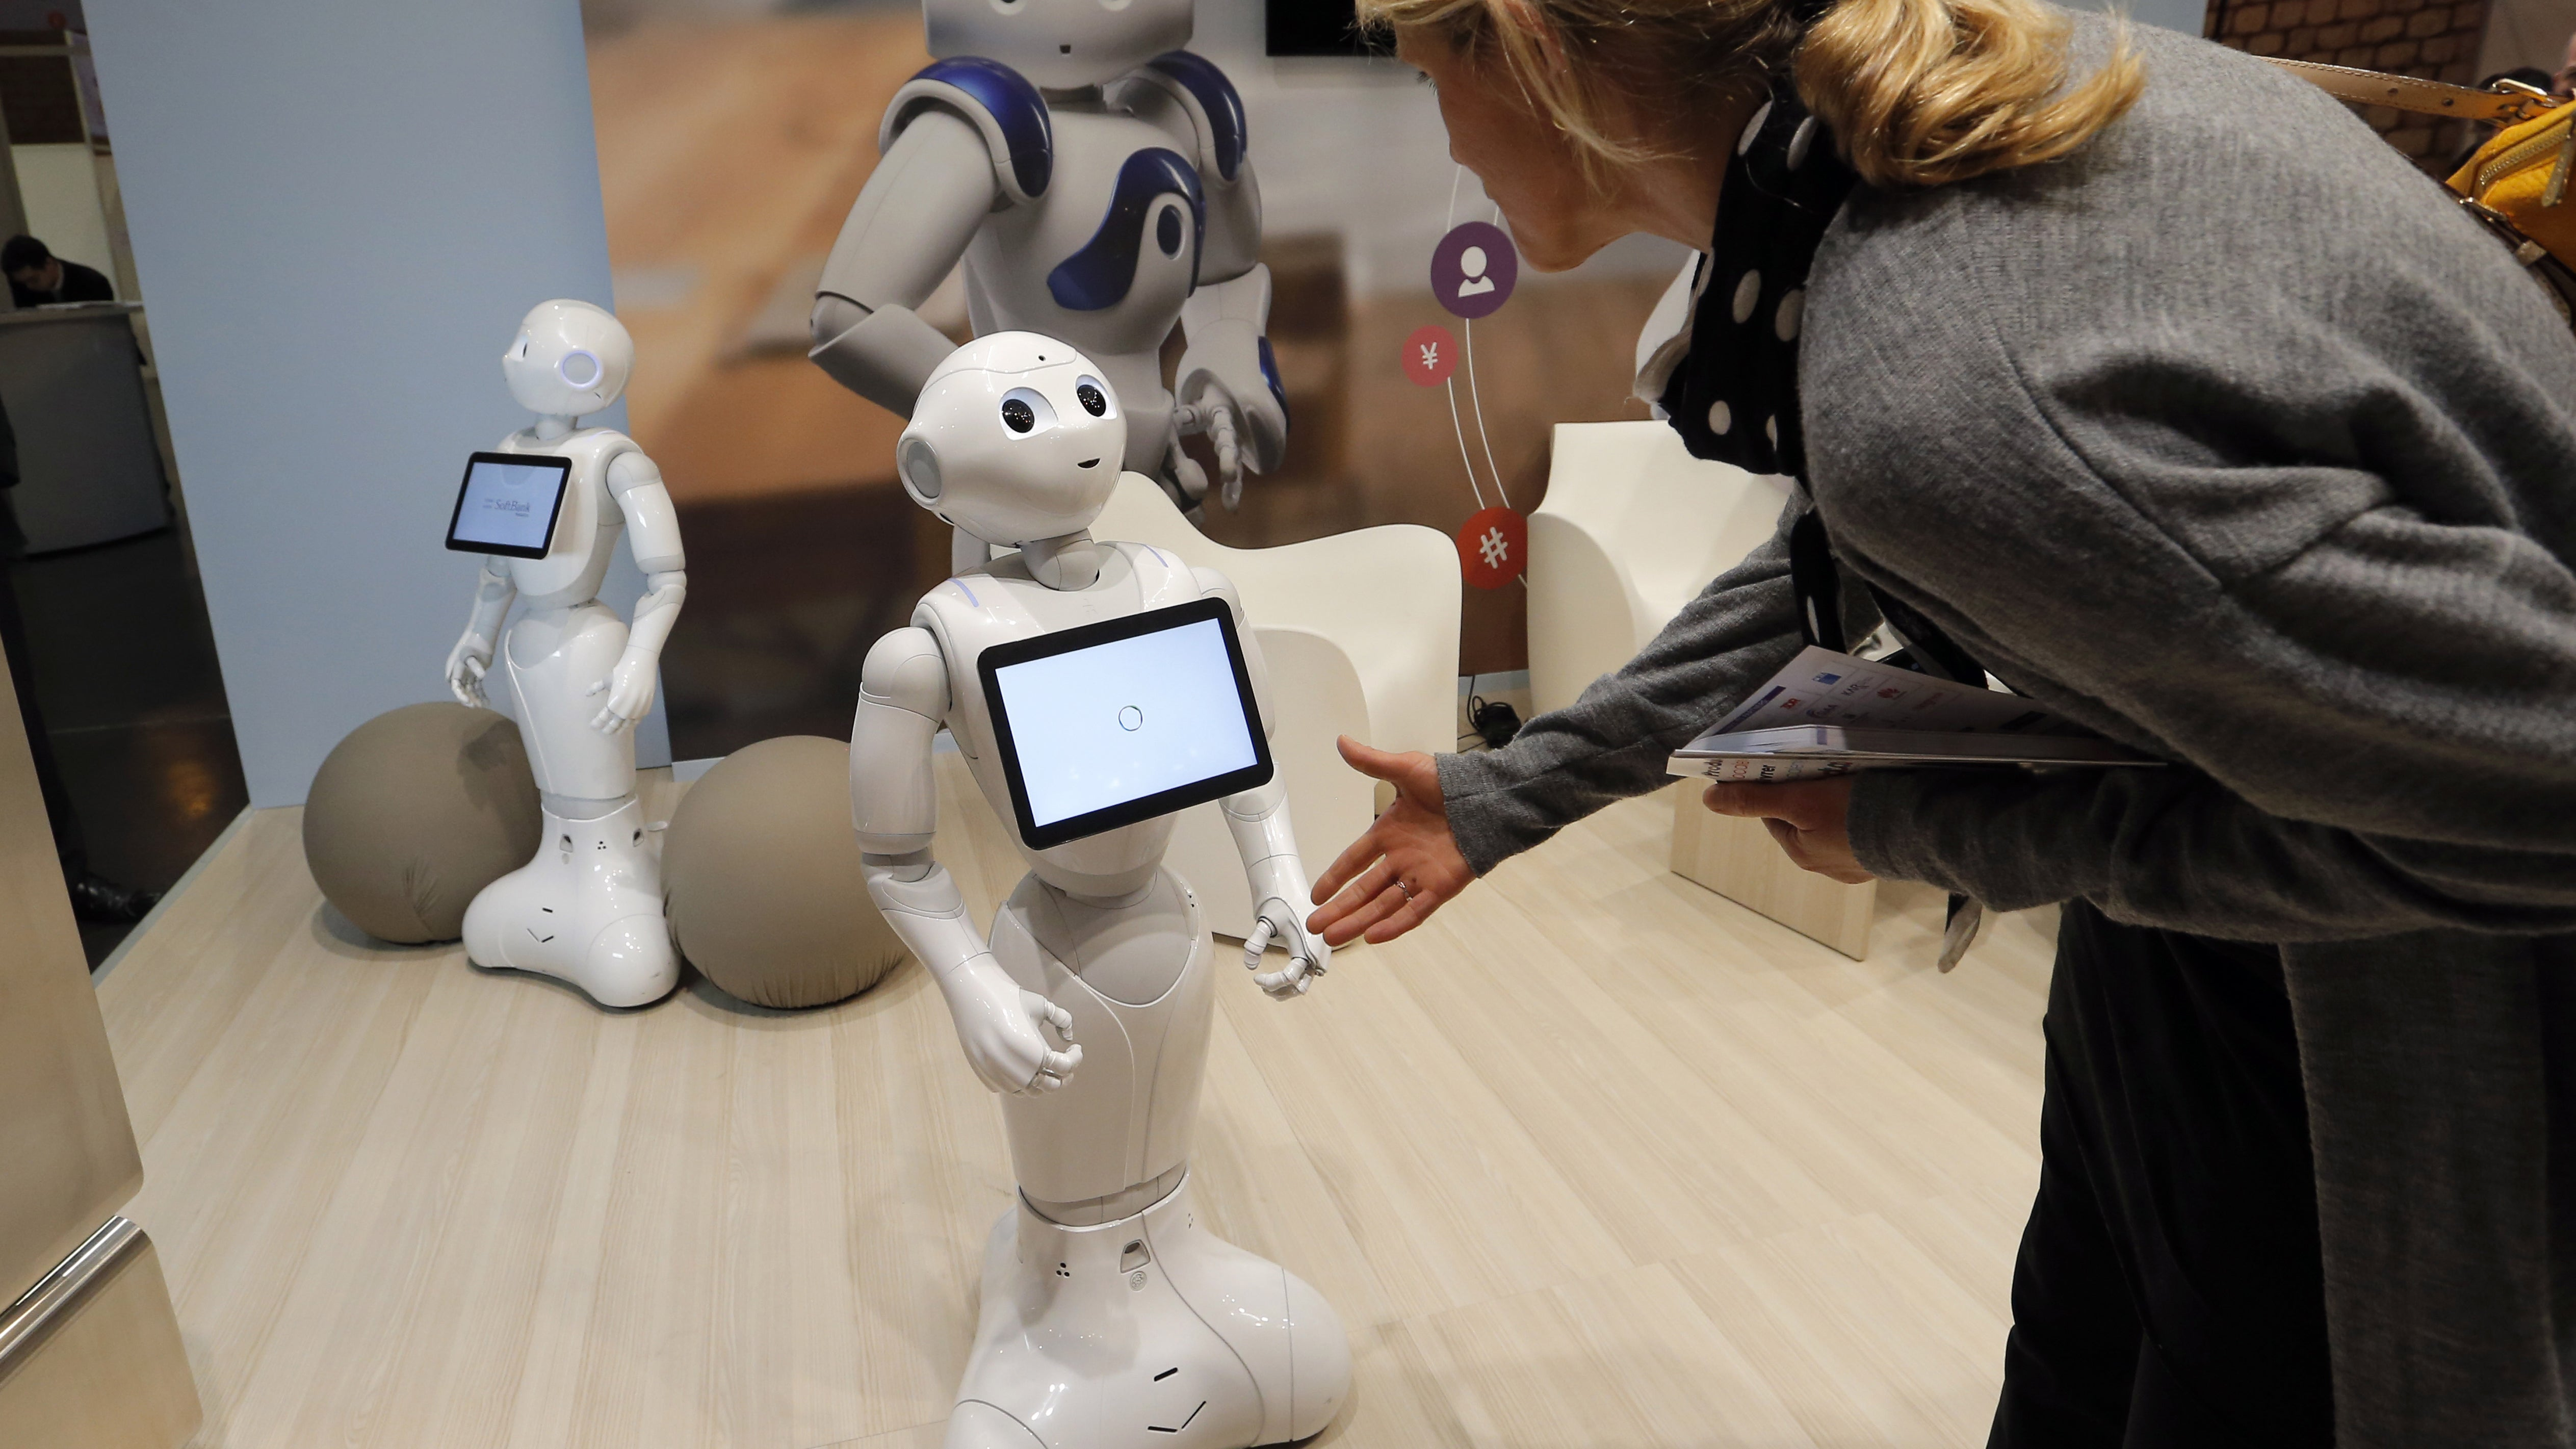 Robots In Europe Could Become 'Electronic Persons'